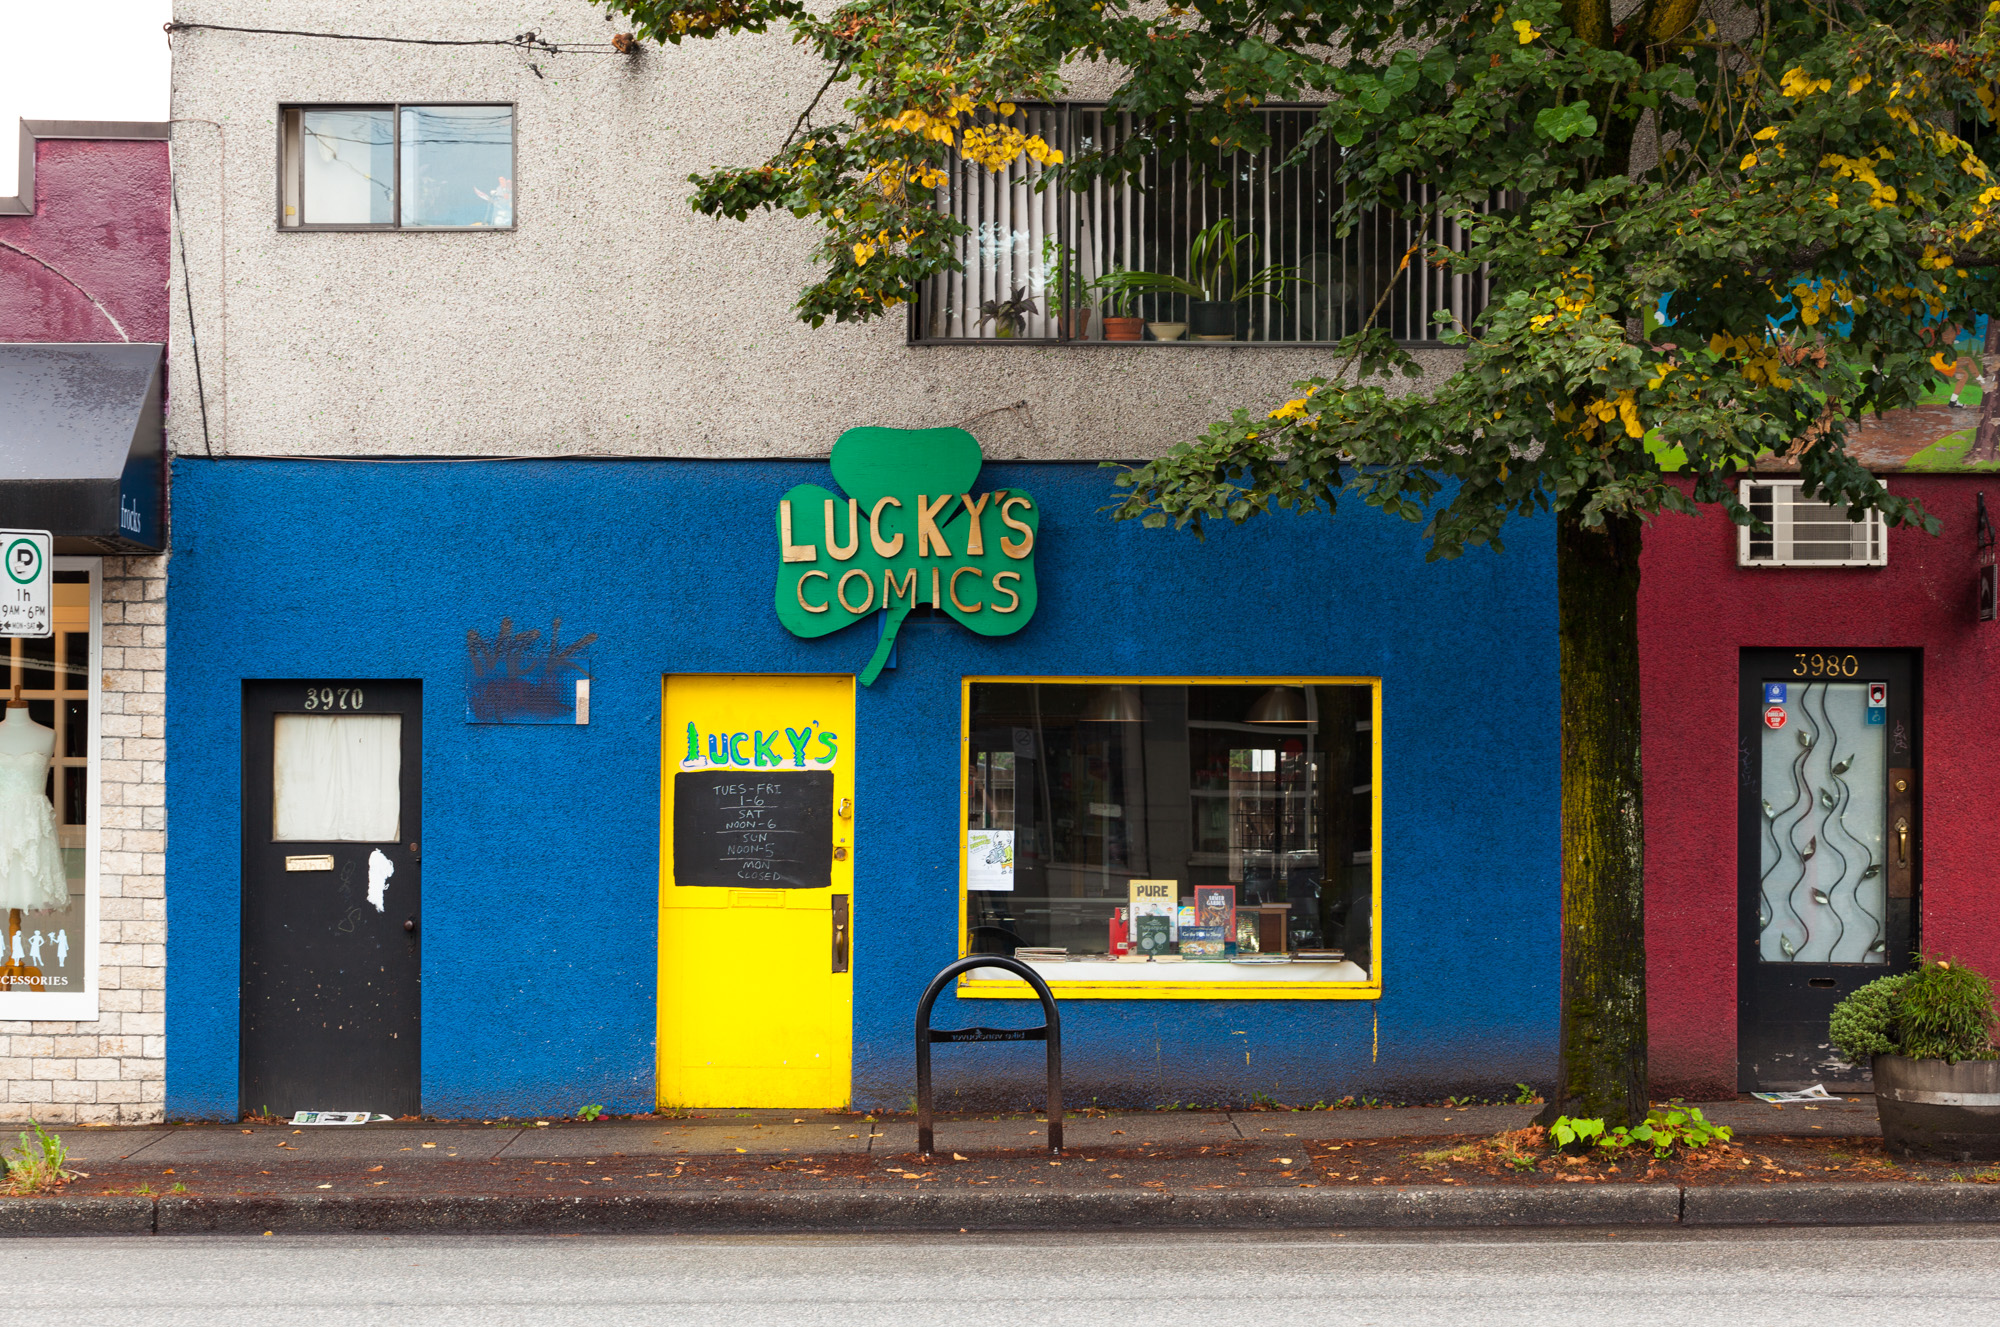 Lucky's Comics storefront on Main Street, Vancouver, BC.